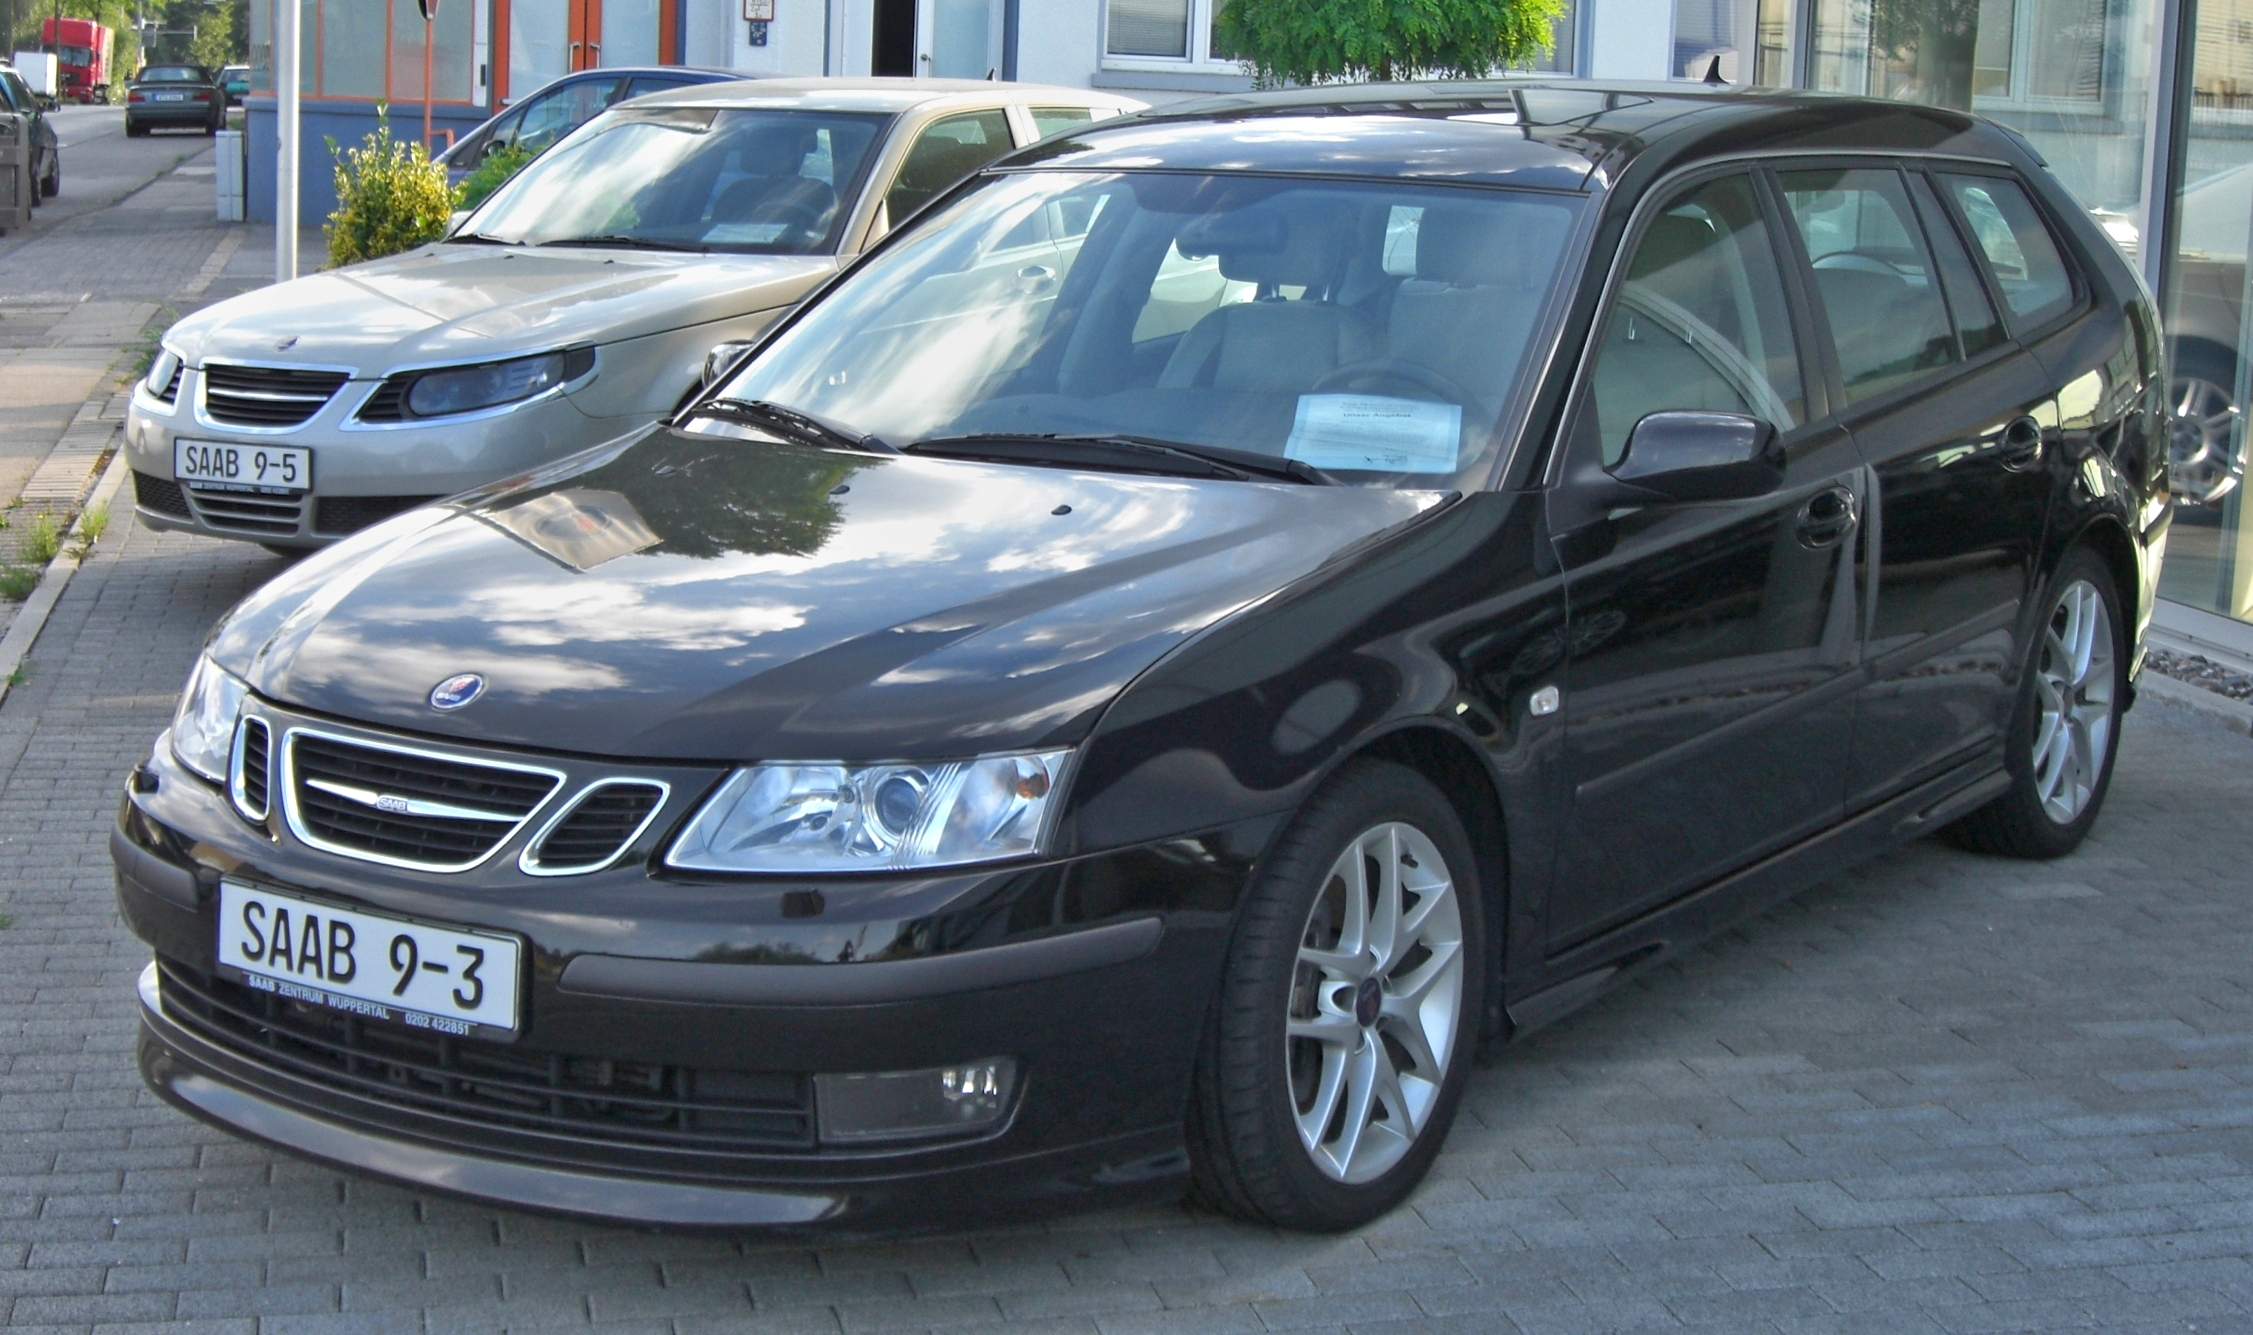 file saab 9 3 sportcombi 2 8 turbo v6 aero vorfacelift front jpg wikimedia commons. Black Bedroom Furniture Sets. Home Design Ideas